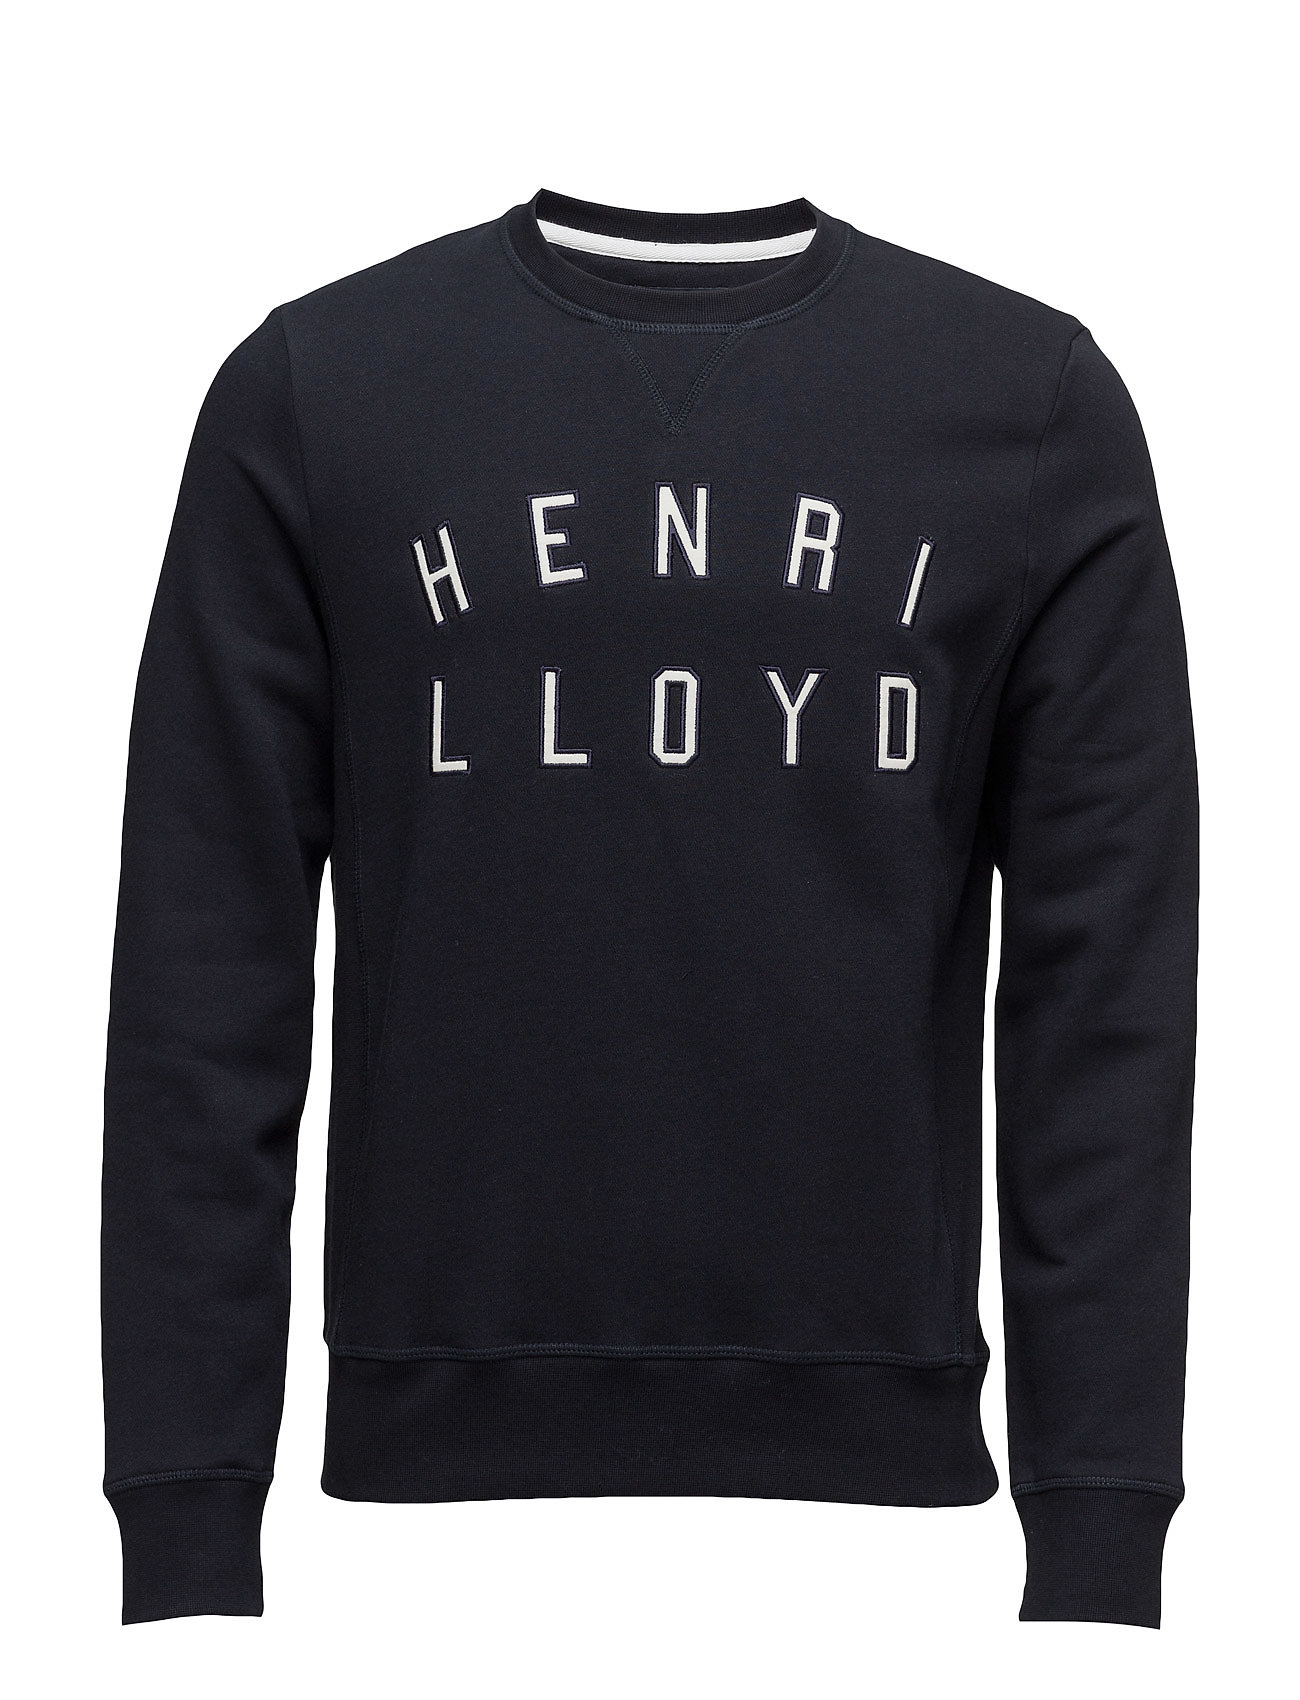 henri lloyd – Adderly crew sweat på boozt.com dk